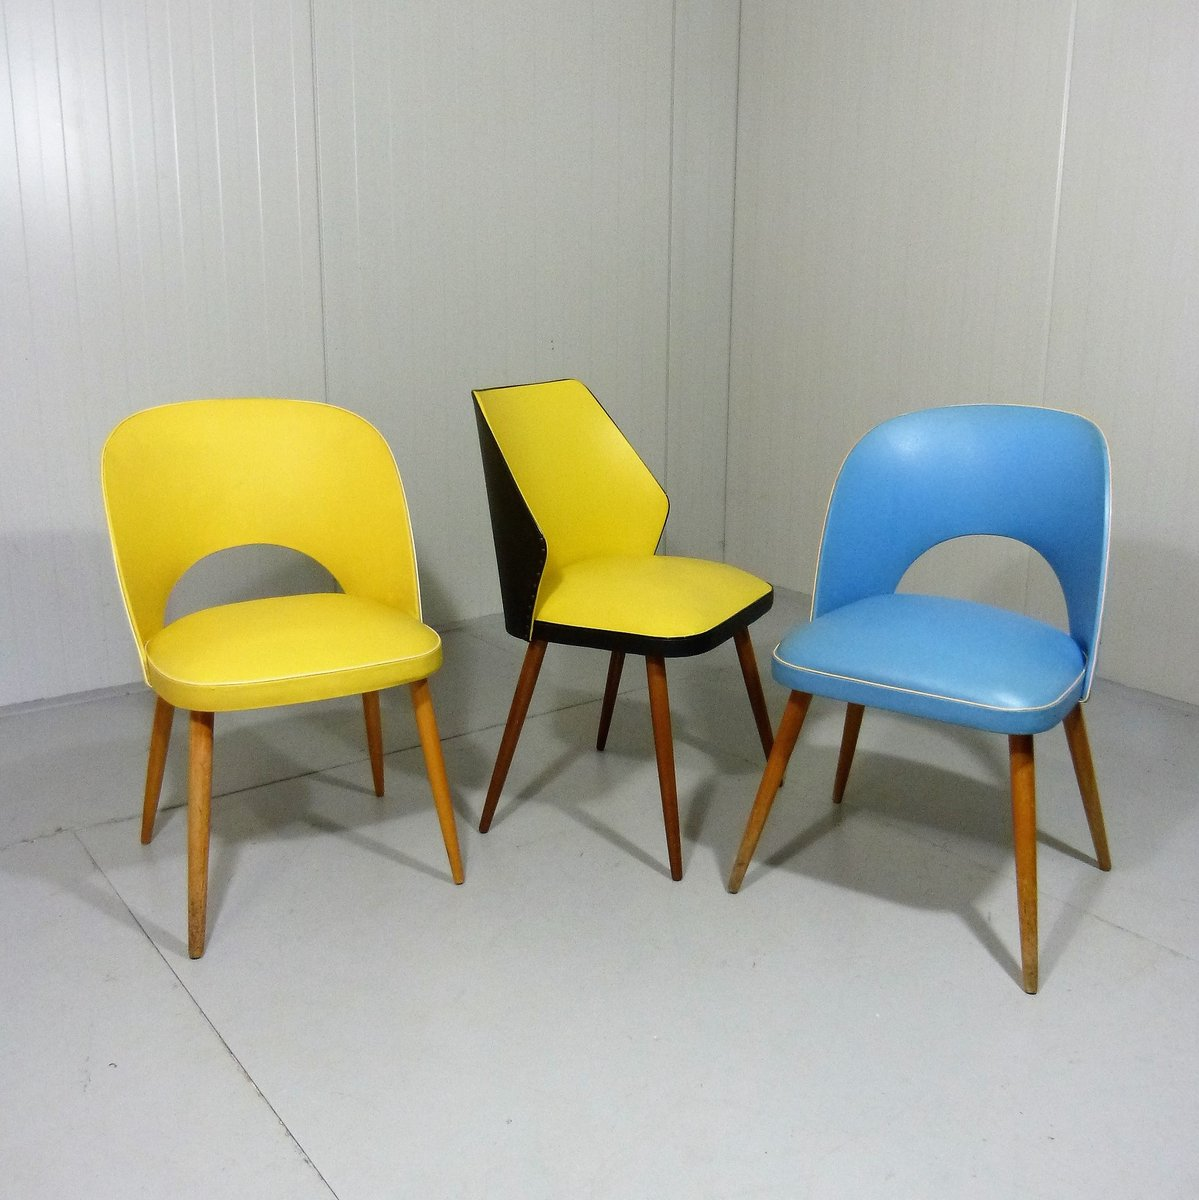 Yellow Dining Chairs: Yellow Dining Chair, 1950s For Sale At Pamono